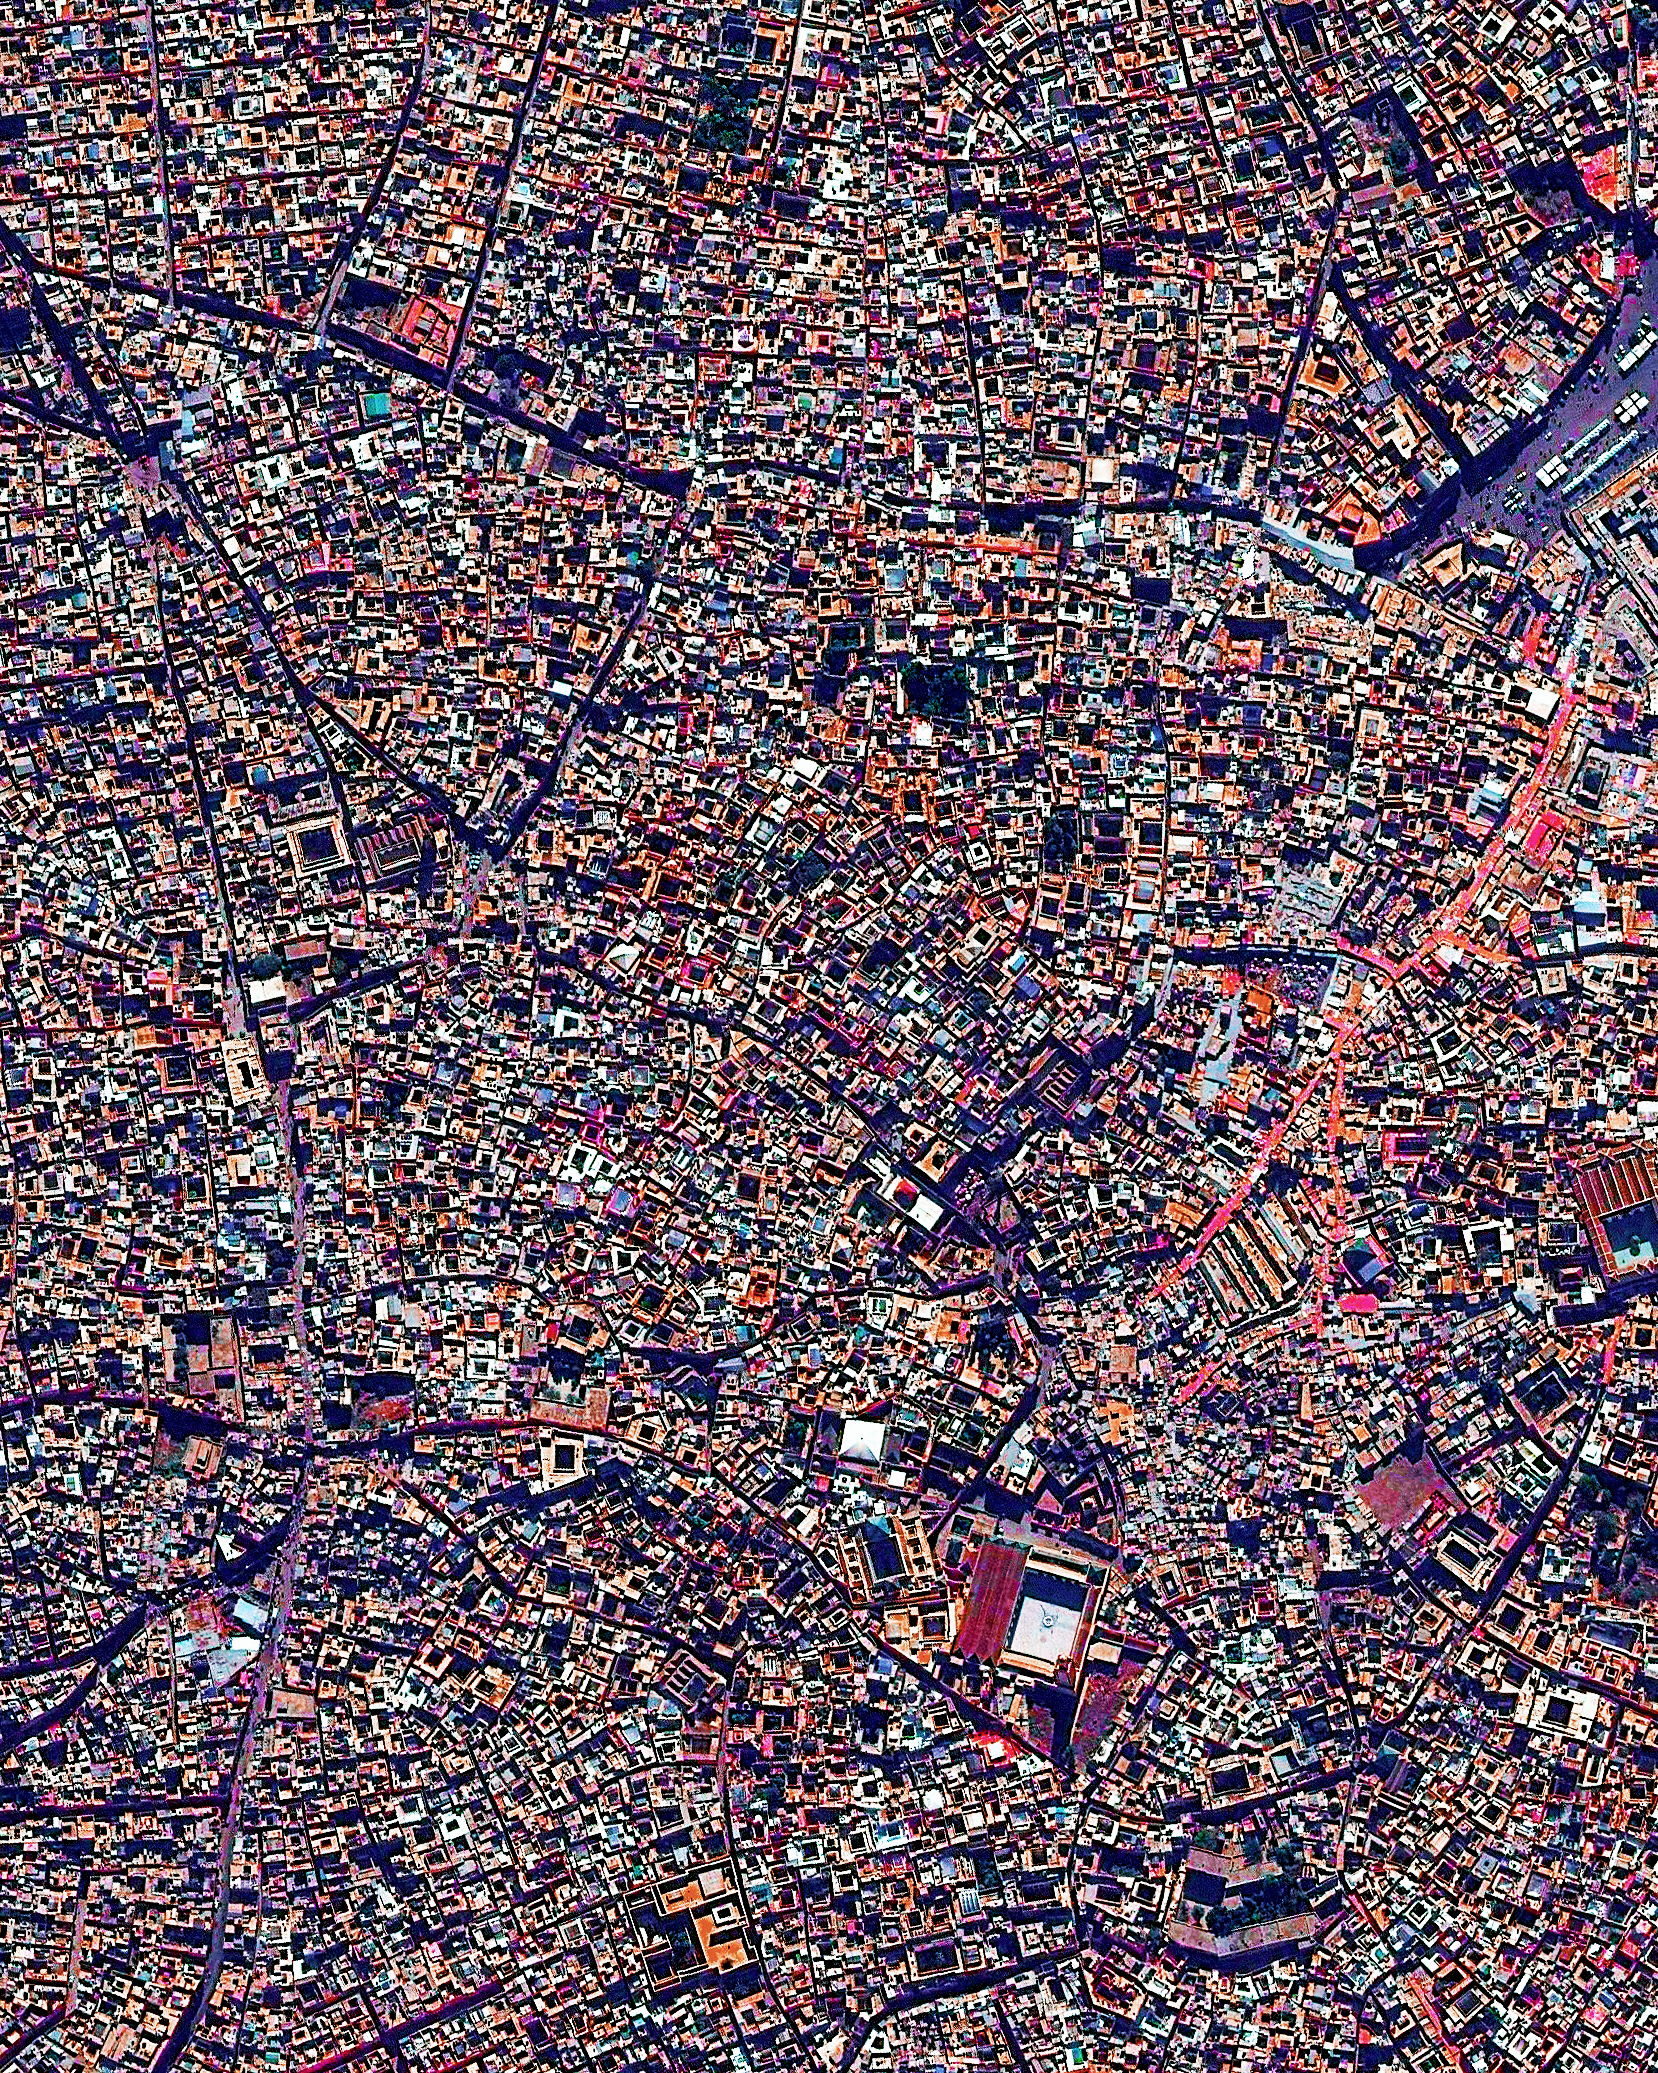 9/29/2016   Medina quarter   Marrakesh, Morocco  31.633080724°, -7.986173343°    The medina quarter in Marrakesh, Morocco is characterized by its winding, maze-like streets. Because the intricately connected honeycomb of alleyways narrows to less than a meter wide (~ 3 feet) at certain spots, the area is generally free from car traffic.